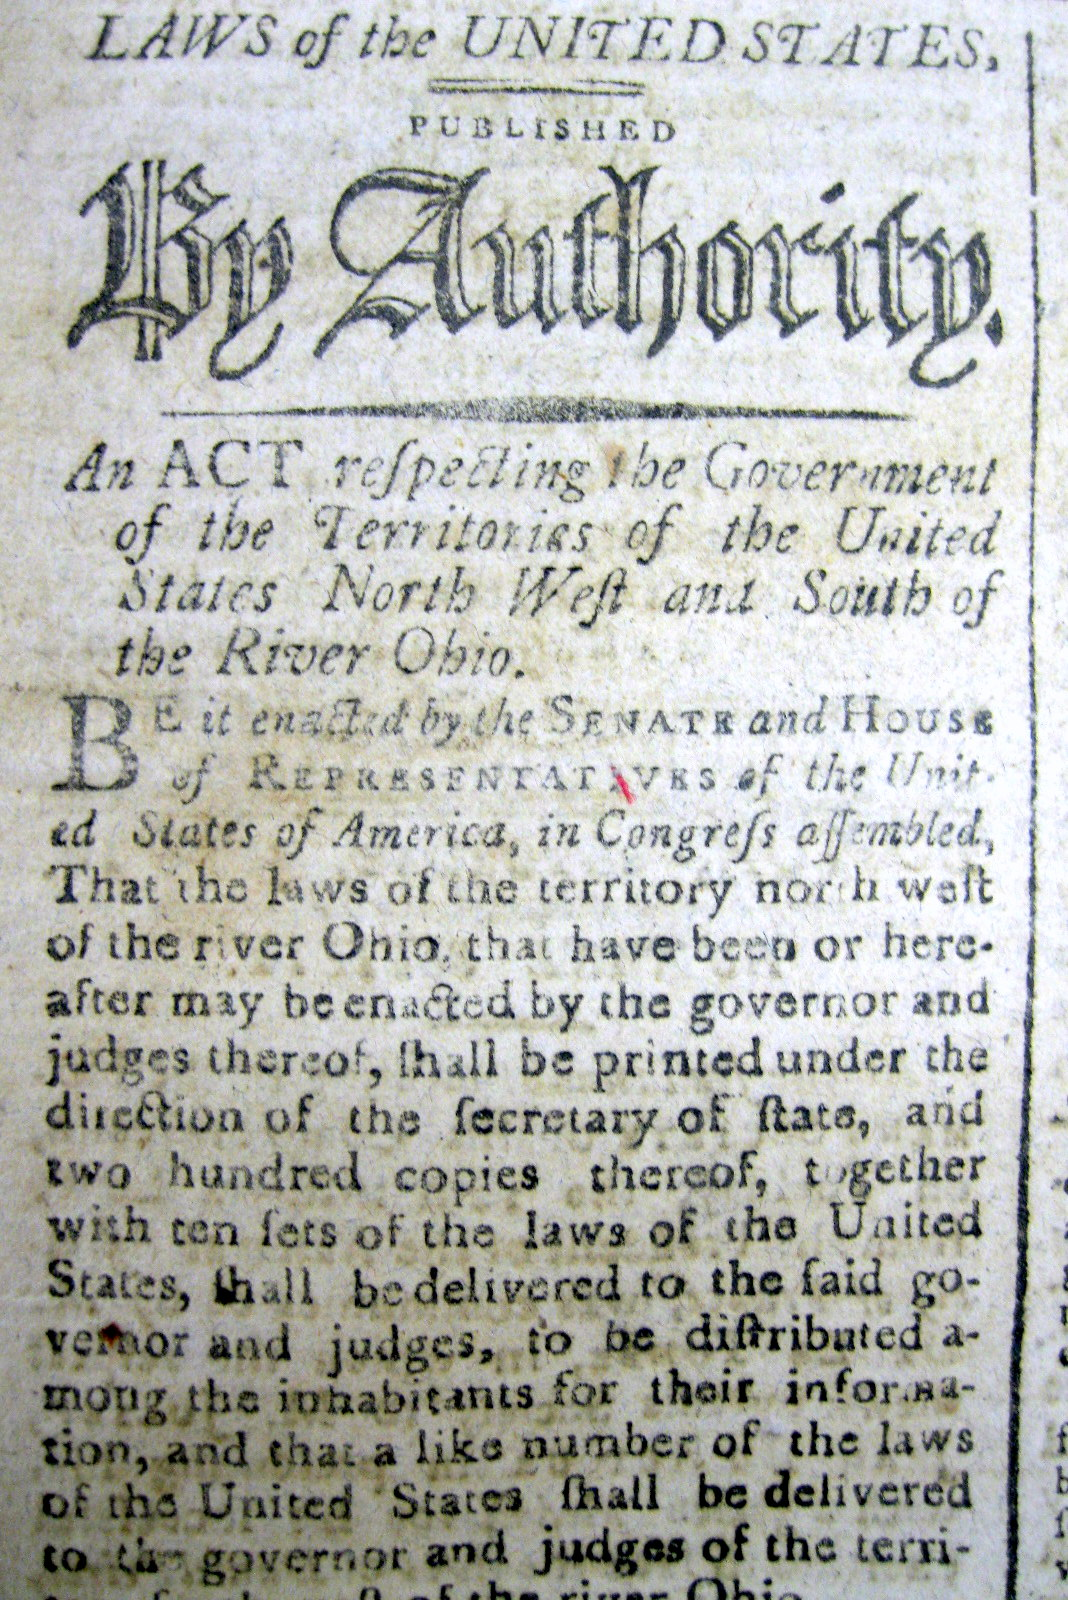 1792 newspaper w the ACT setting up Government for OLD NORTHWEST ...